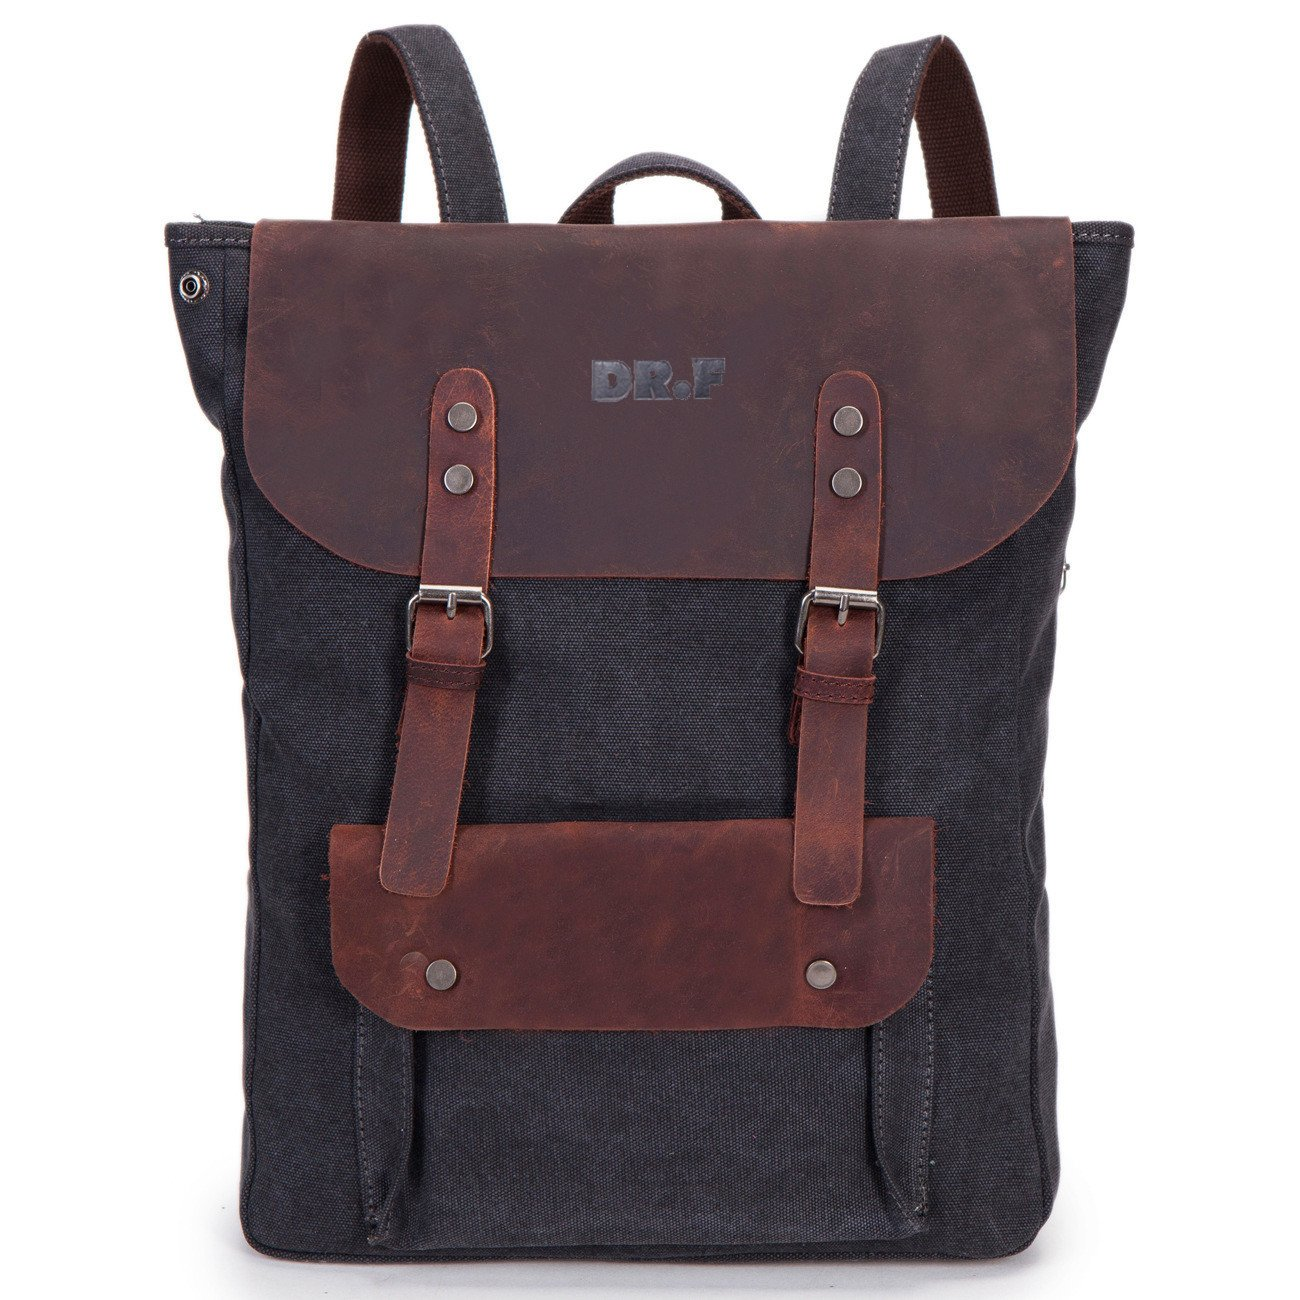 DRF Zaino Casual porta laptop/pc tablet in Tela e Pelle Vintage Altezza 45cm SKU:BG-40 (Blu)